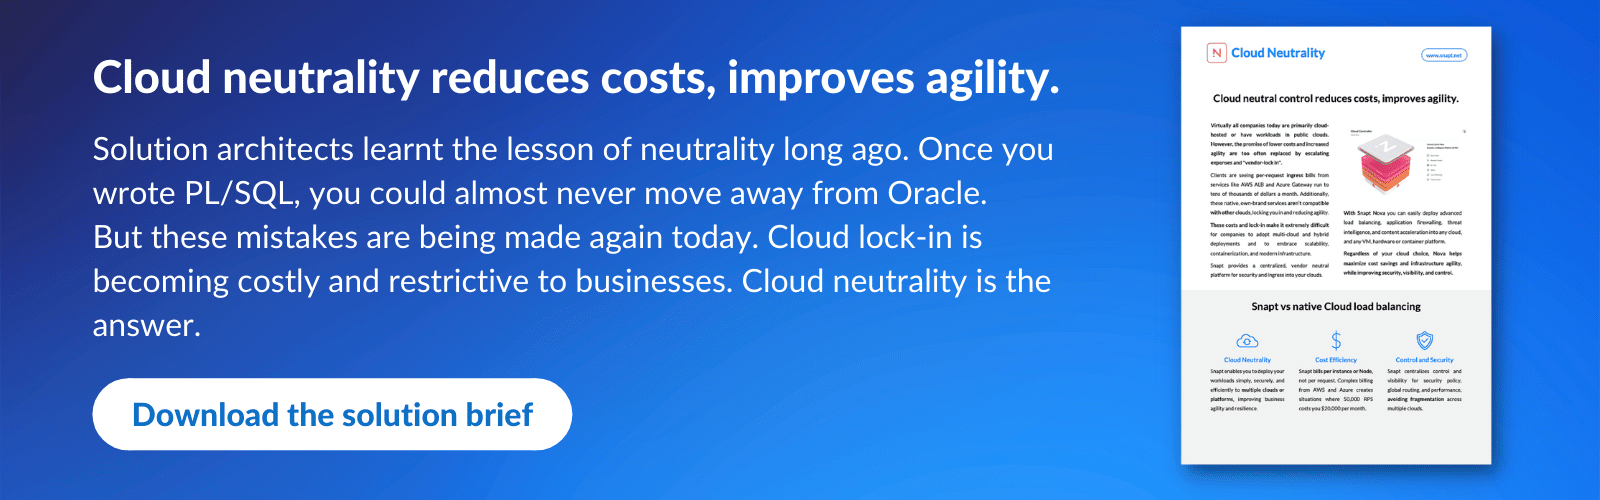 Download Cloud Neutrality solution brief